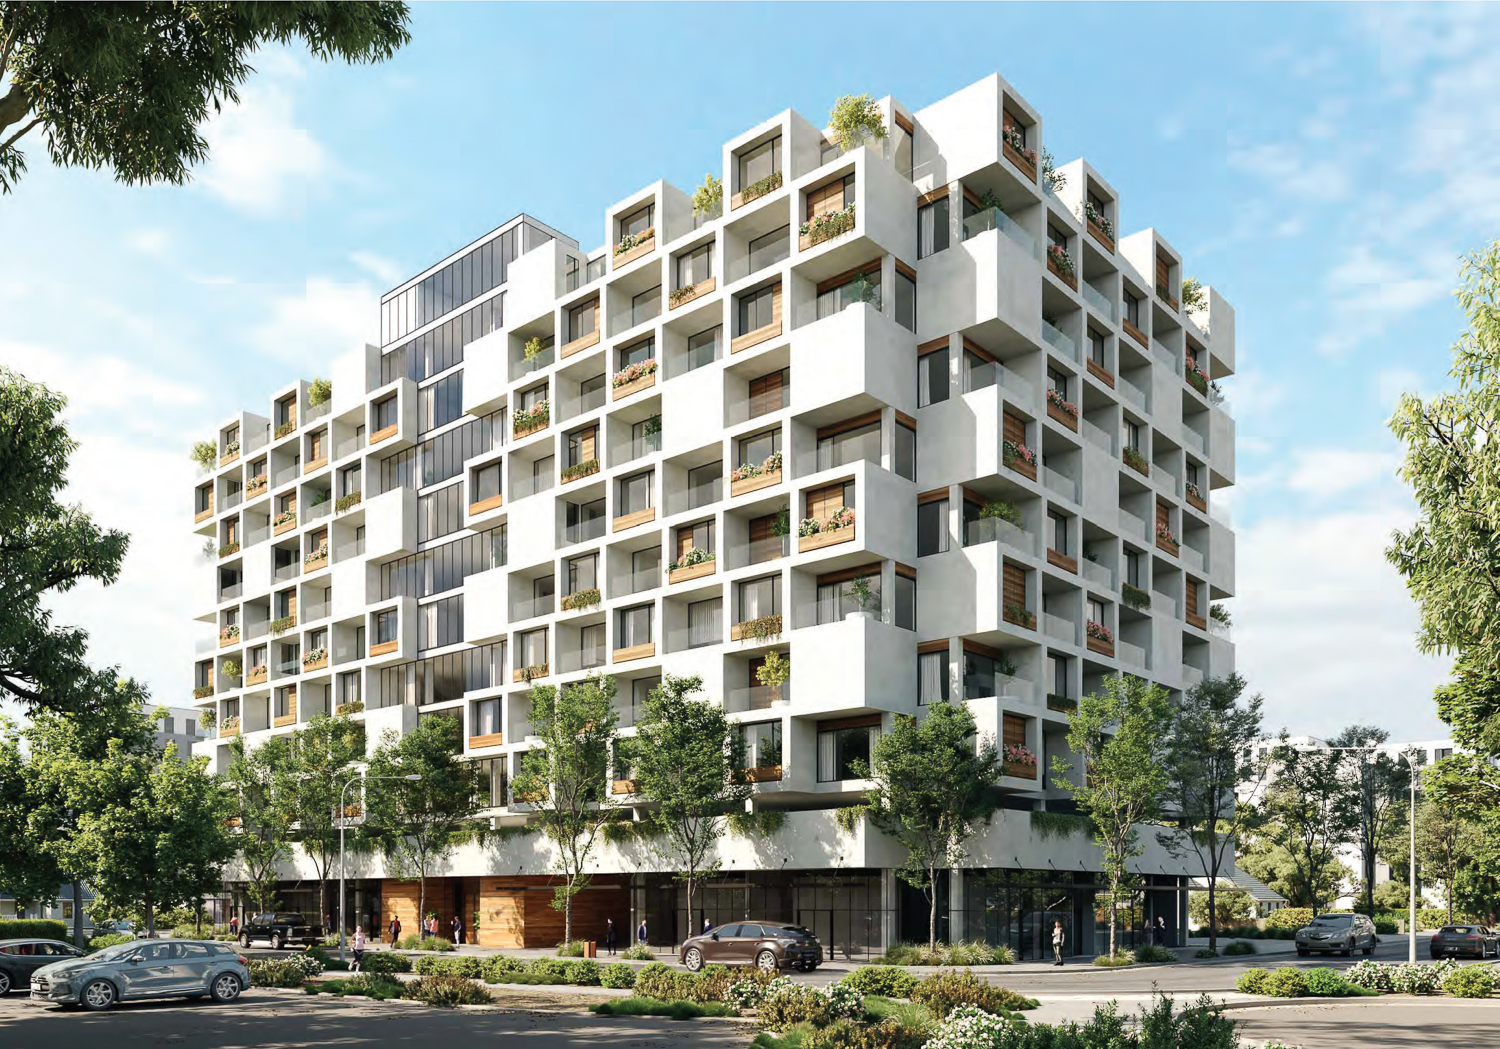 375 South Baywood Avenue, rendering by Carpira Design Group